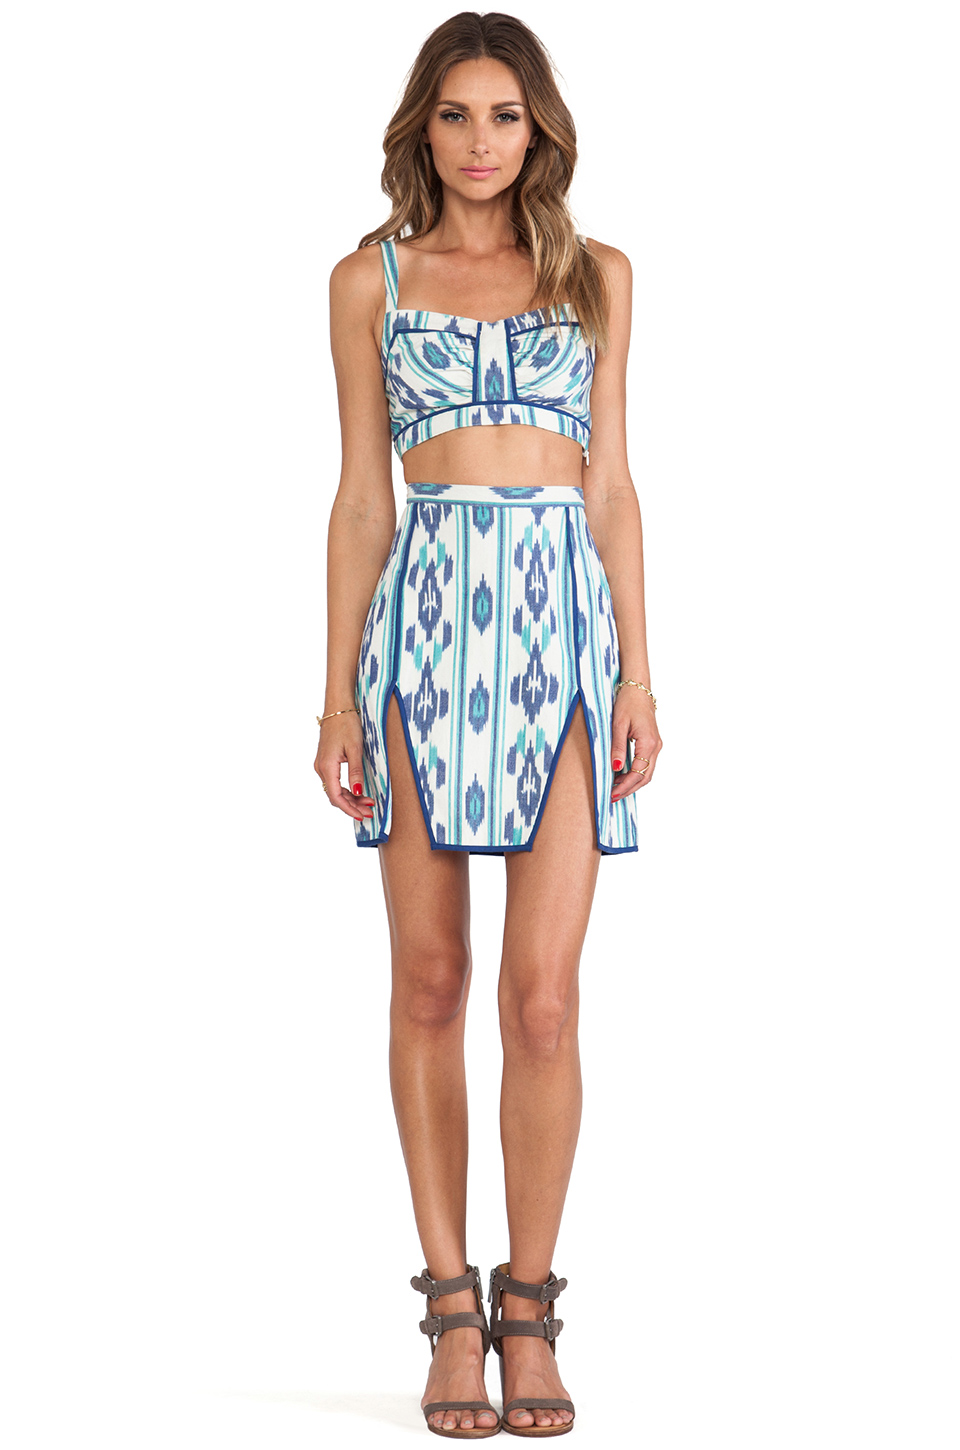 d.RA Janet Skirt in Blue Ikat | REVOLVE